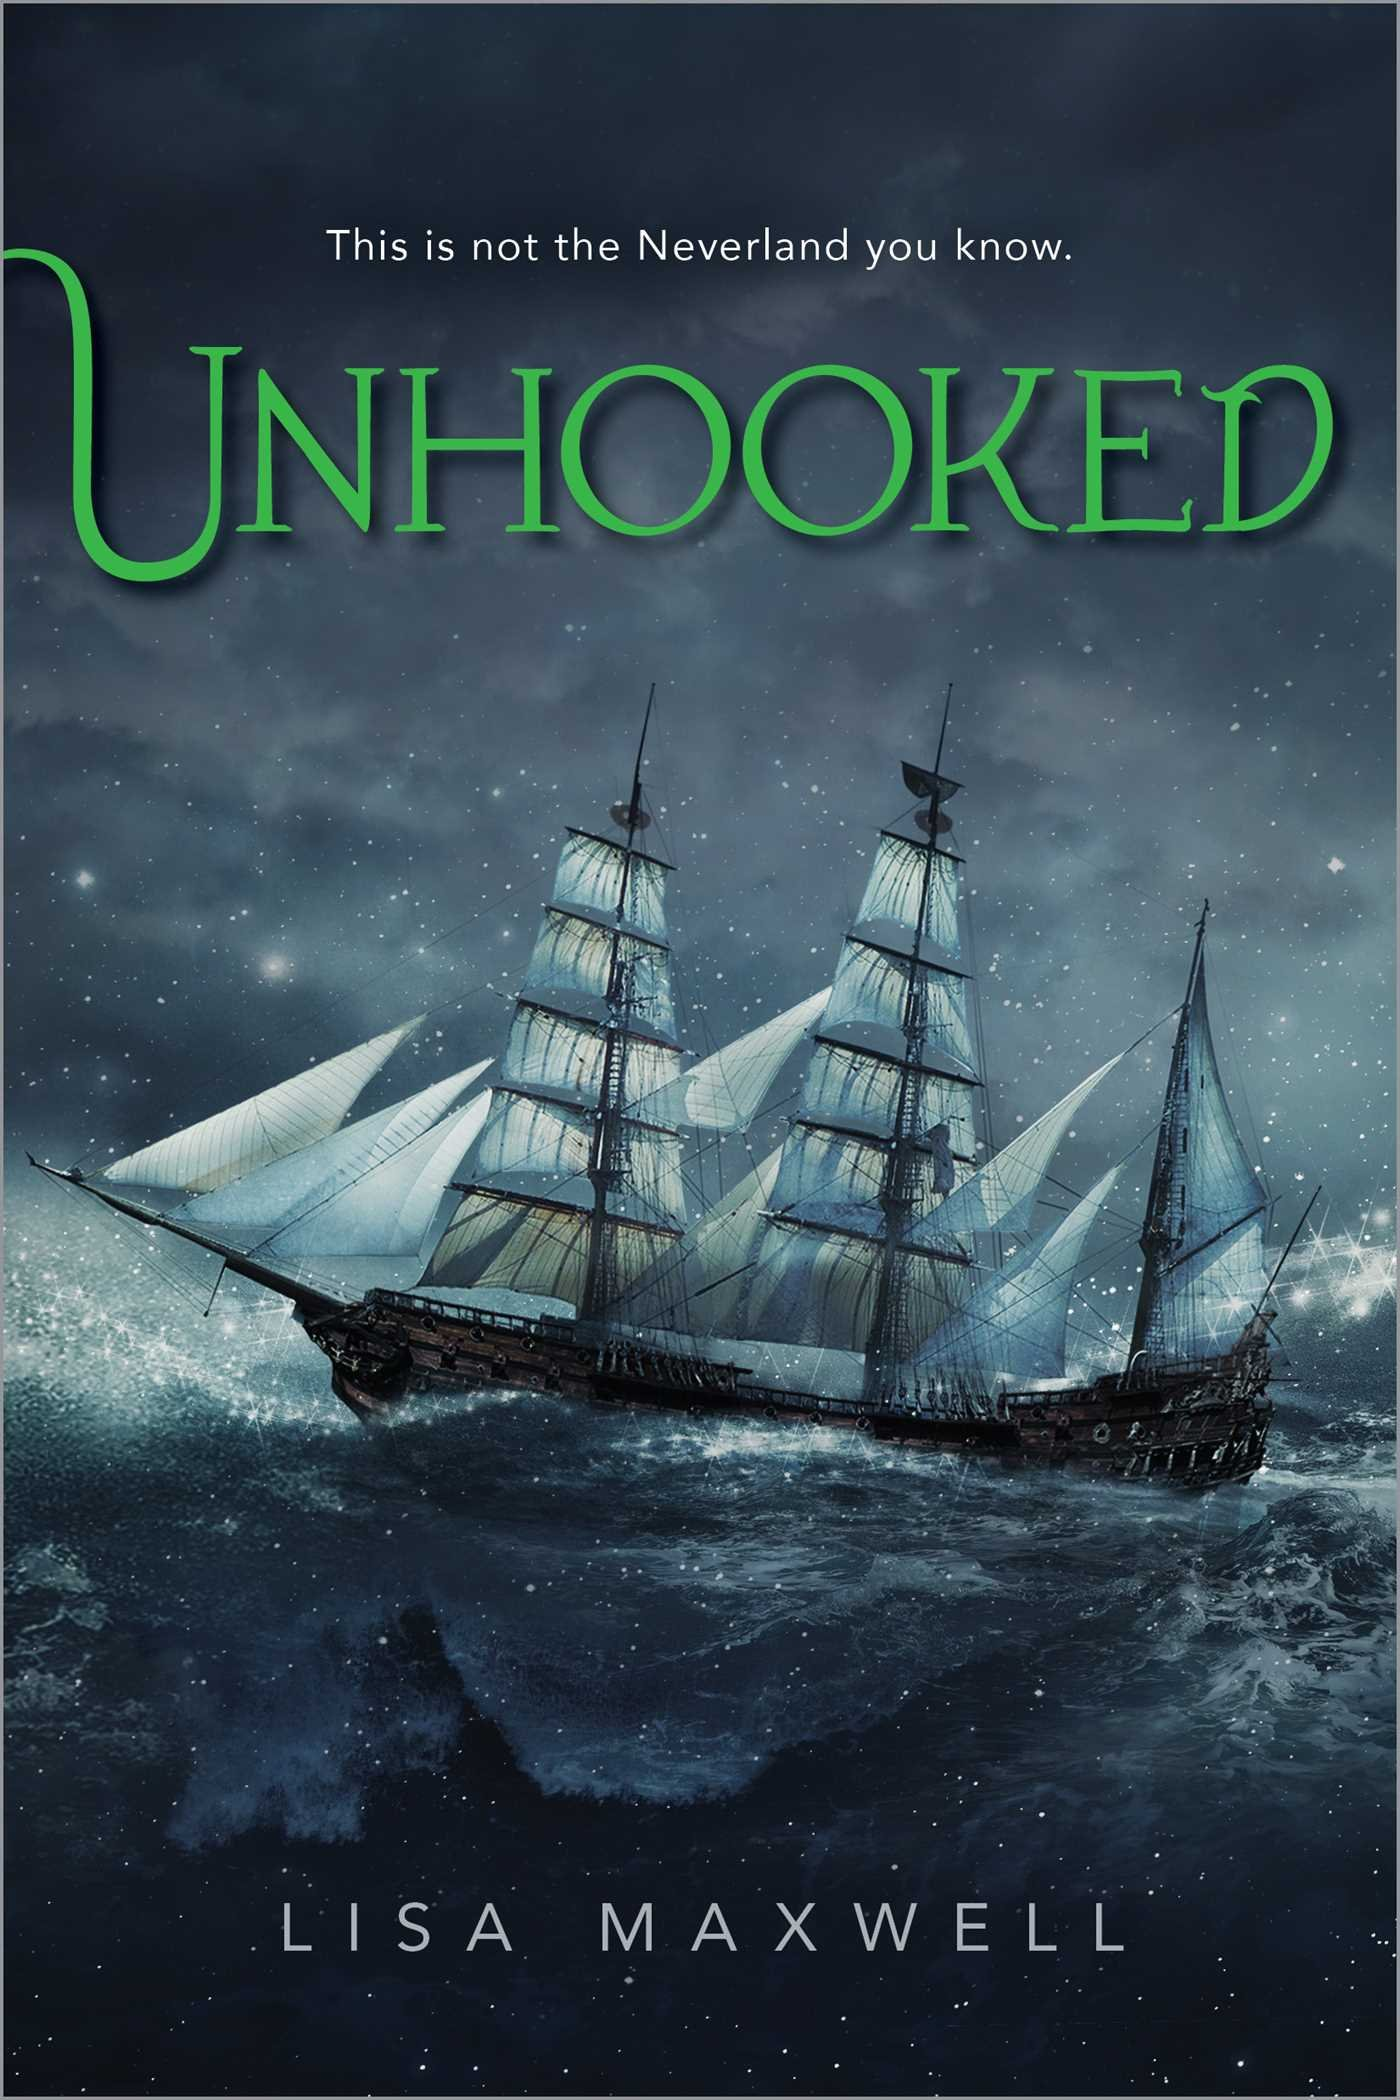 Image result for unhooked book